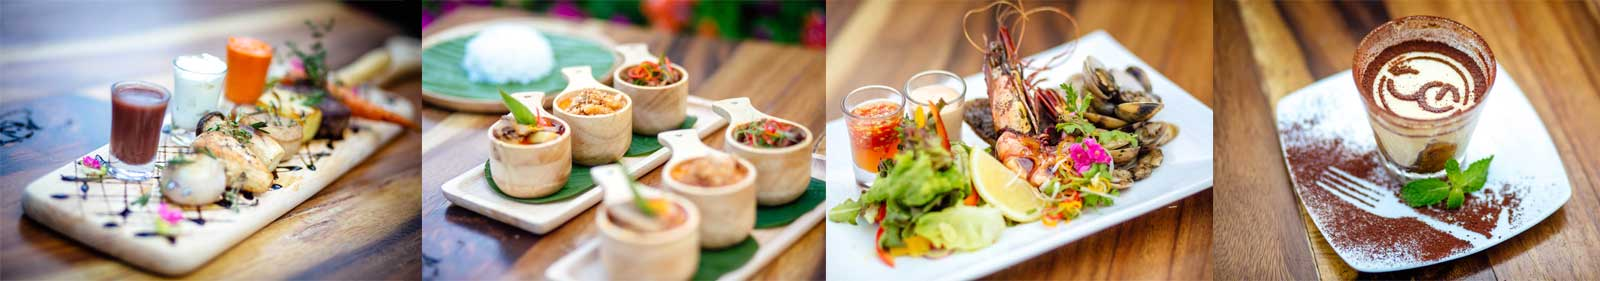 Delicious Food Choices at Secret Garden Beach Resort